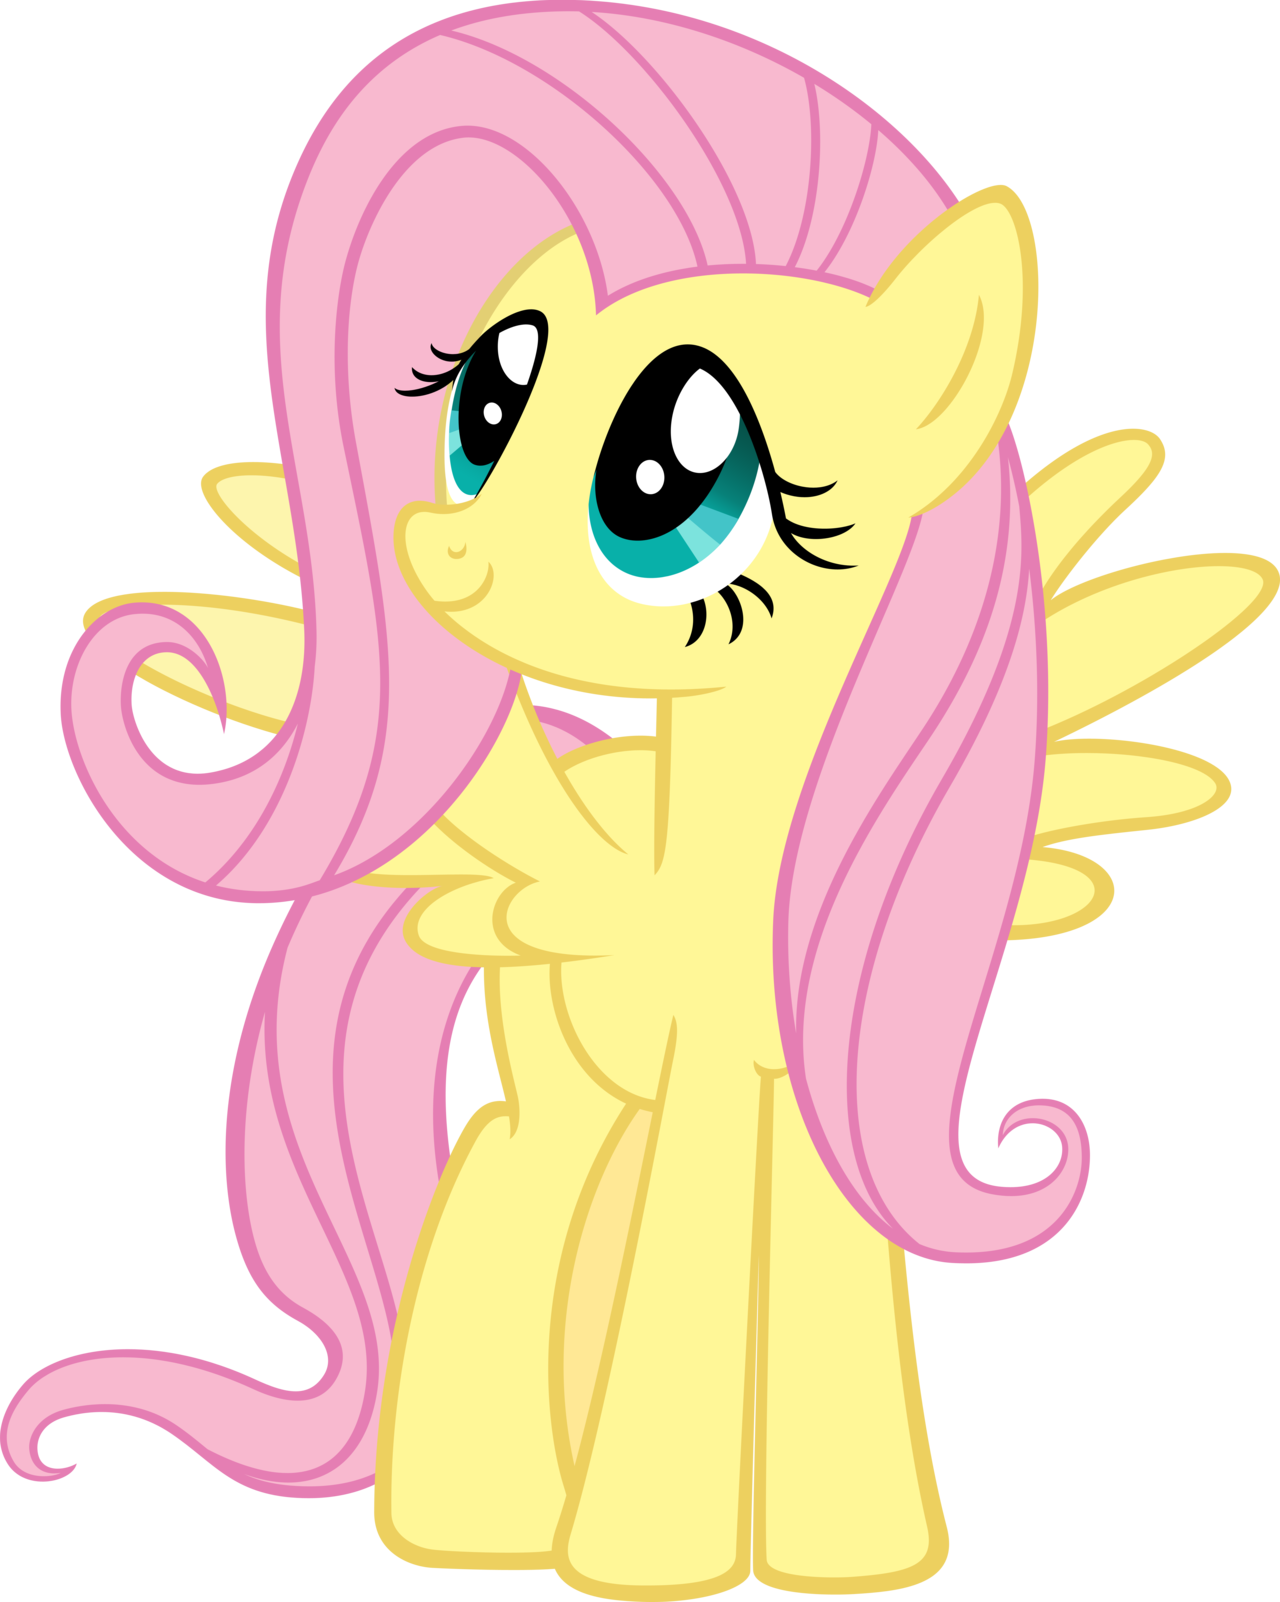 My little pony friendship is magic png. Image fluttershy ichc fluttershymylittleponyfriendshipismagicpng